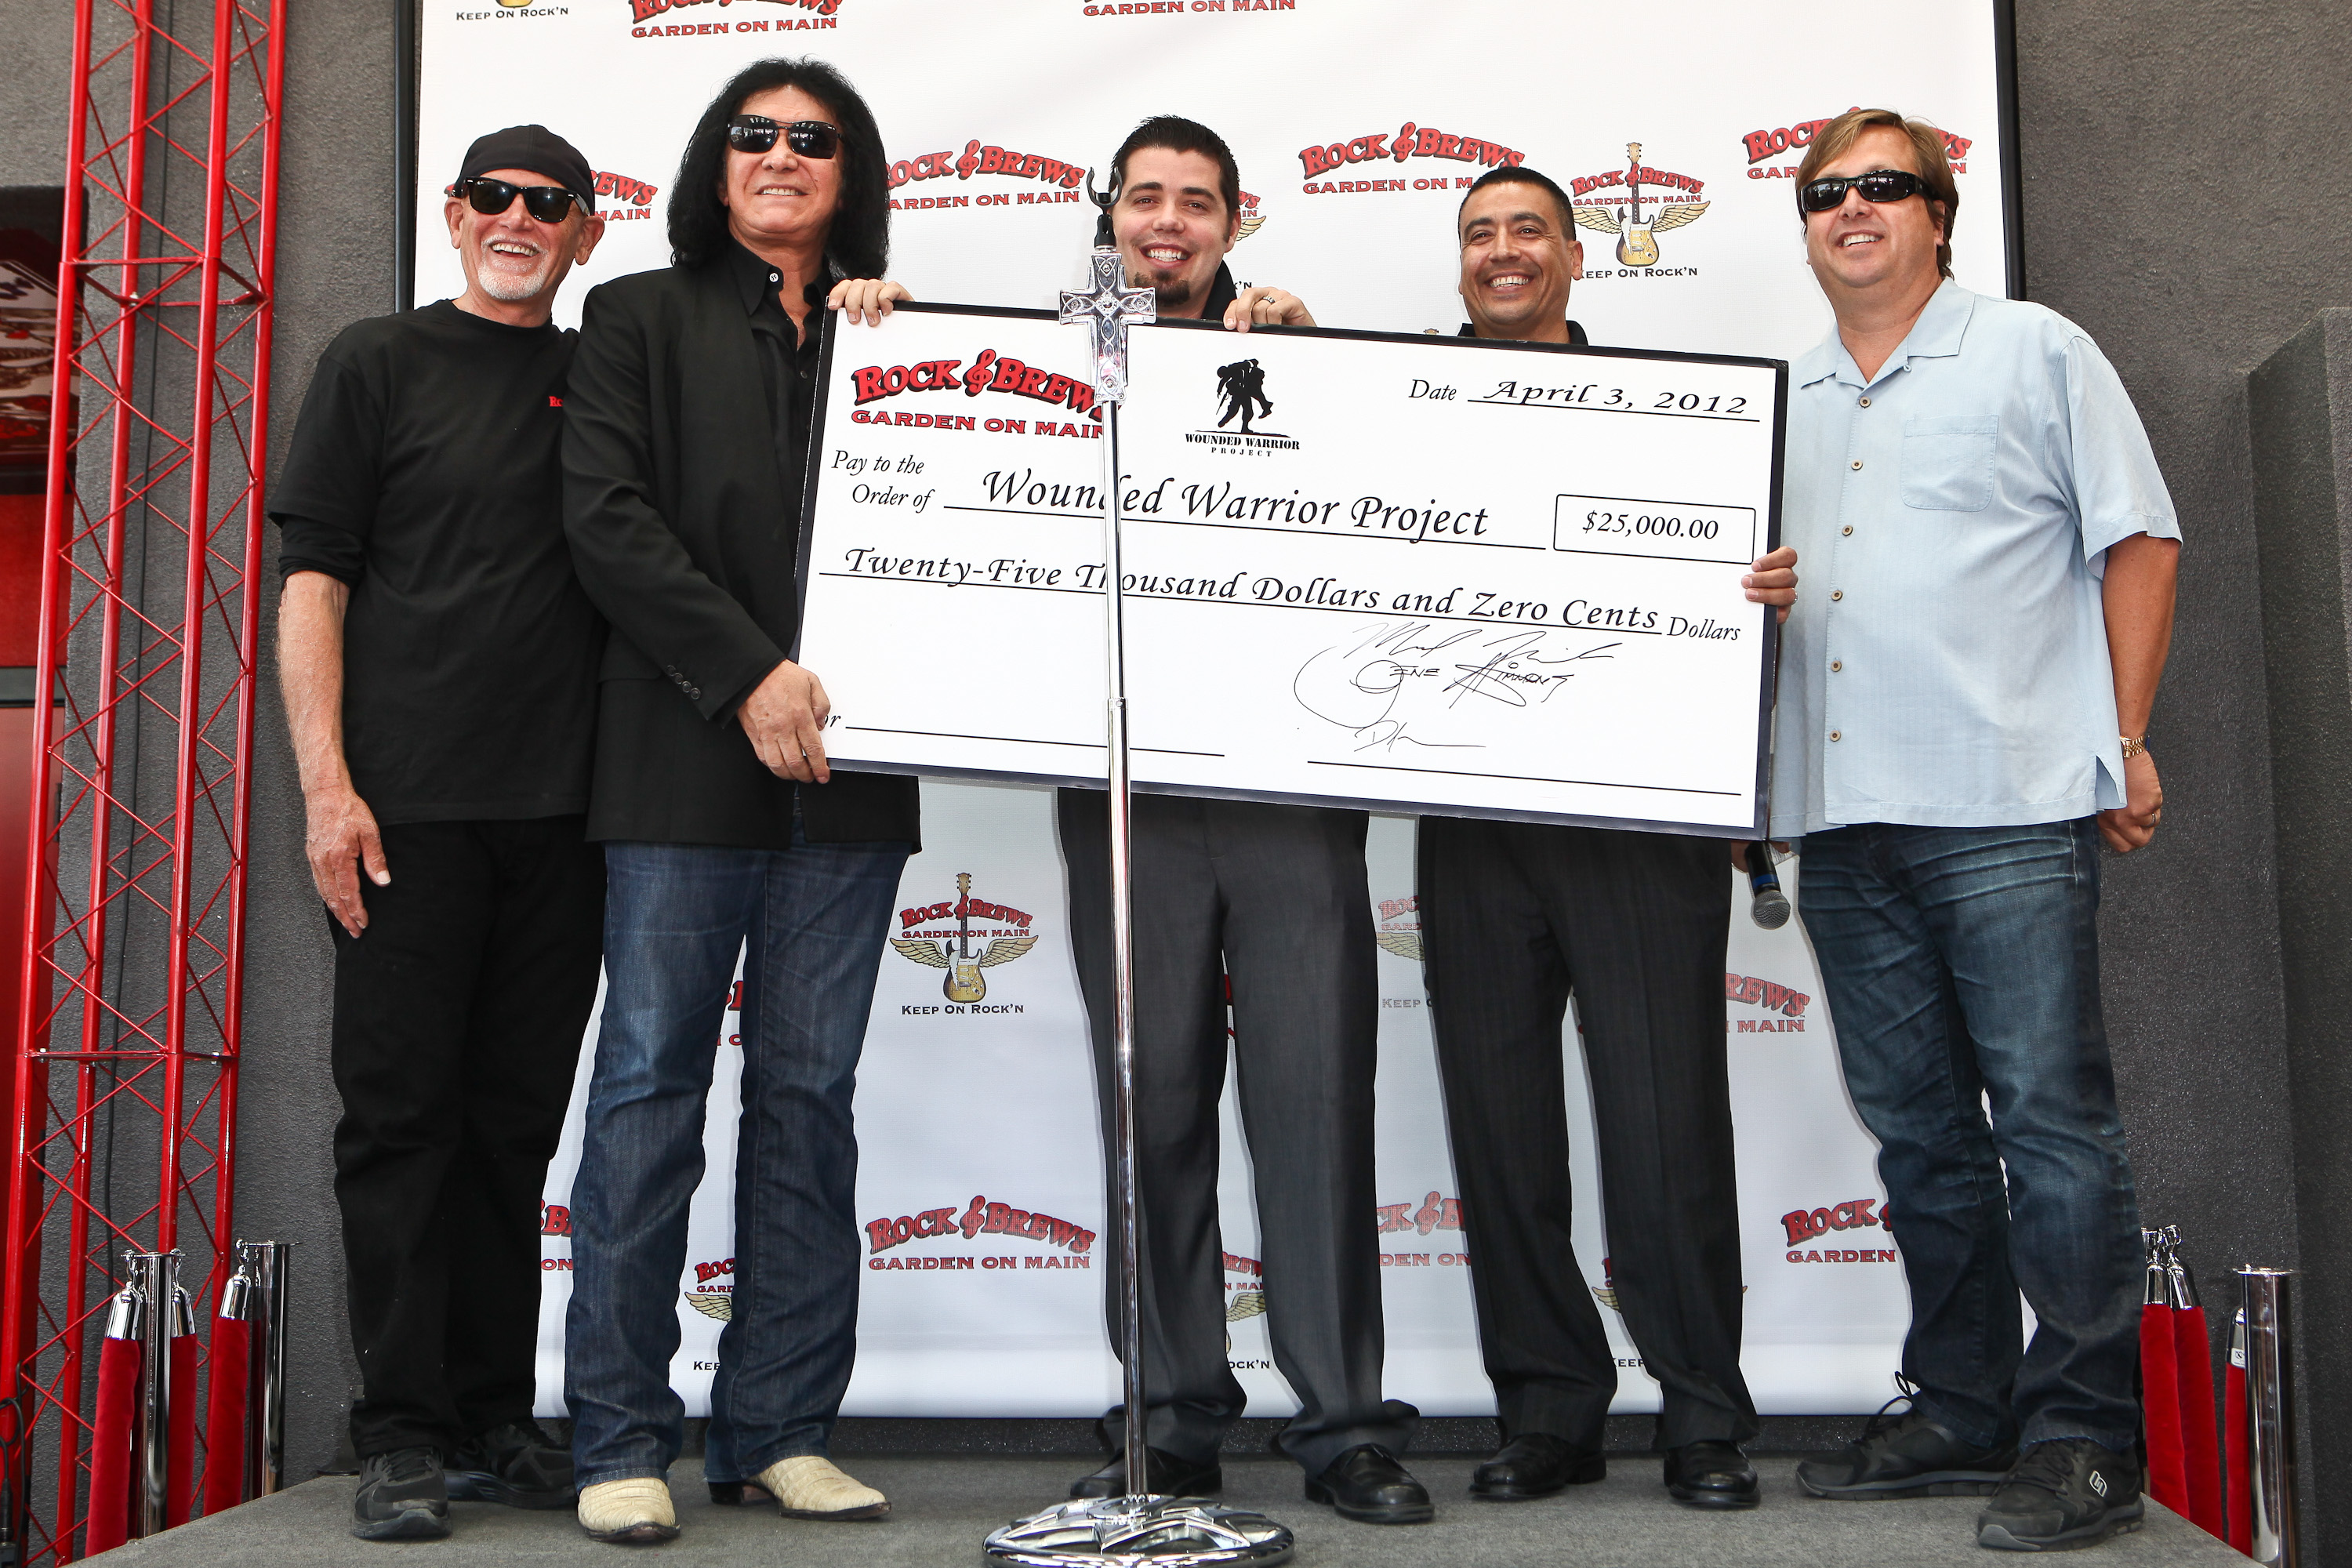 Wounded Warrior Private Luncheon With Gene Simmons